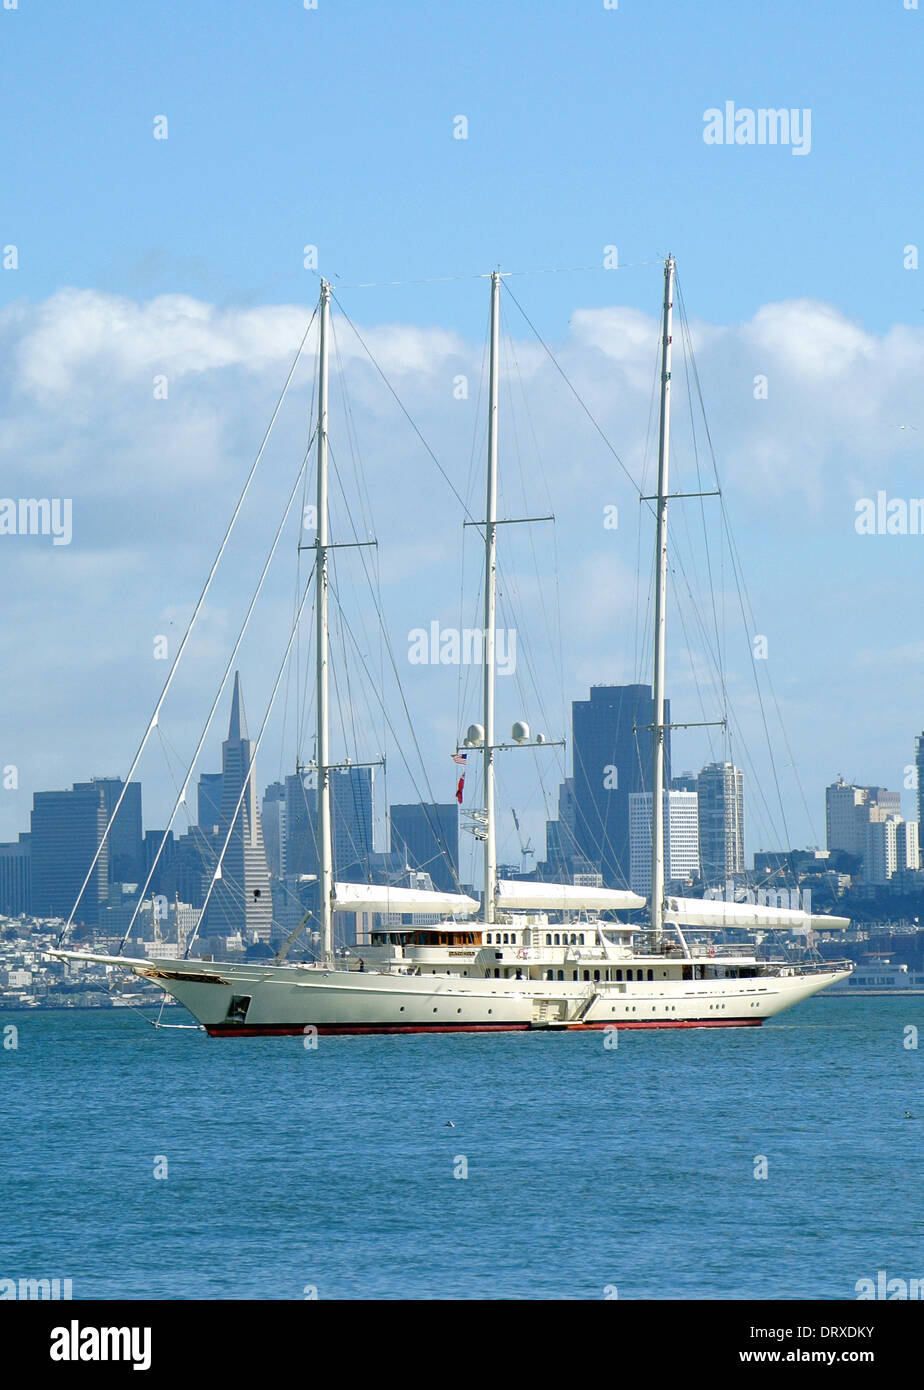 The  worlds 4th largest luxury yacht Athena built for  Netscape internet Entrepreneur Jim Clark and valued at 95million US dollars  anchors off Sausalito in San Francisco Bay - Stock Image